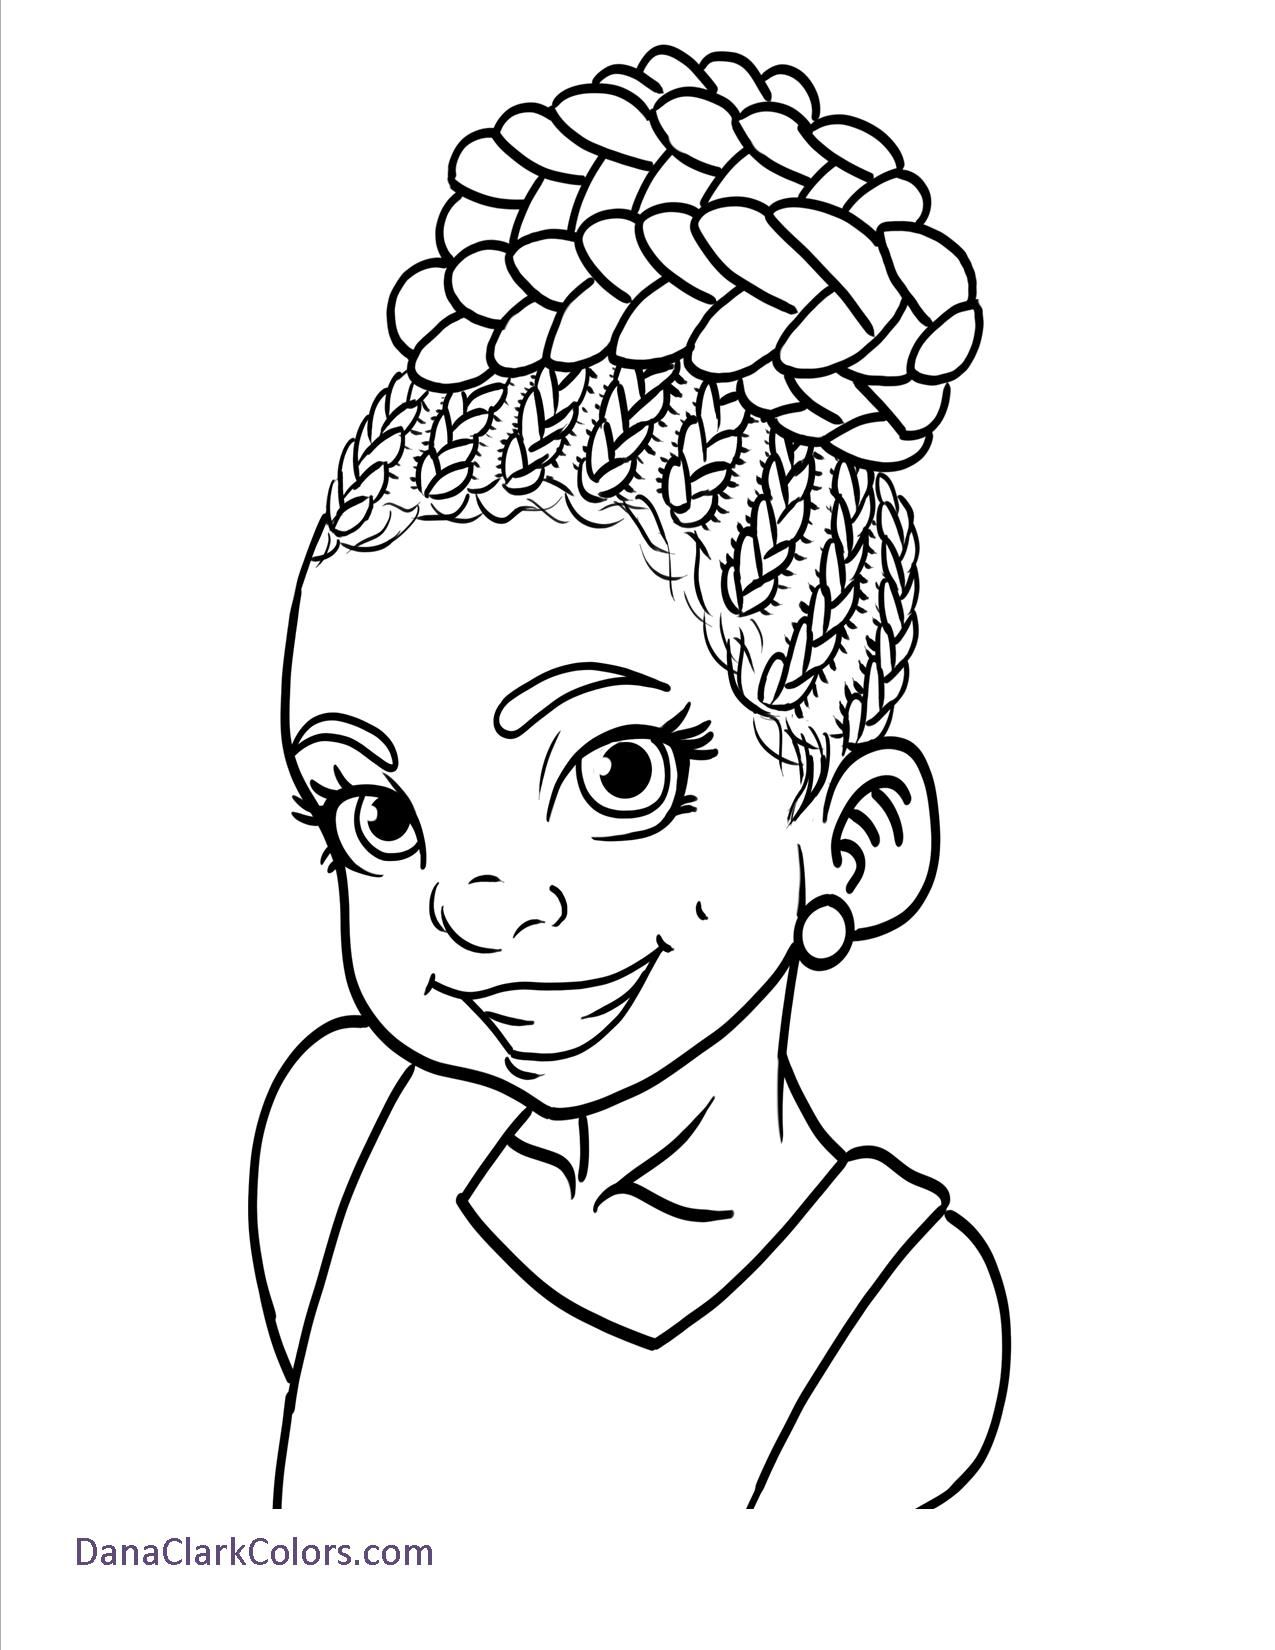 black kids coloring page africanamericancoloringpages learn pinterest black kids kids